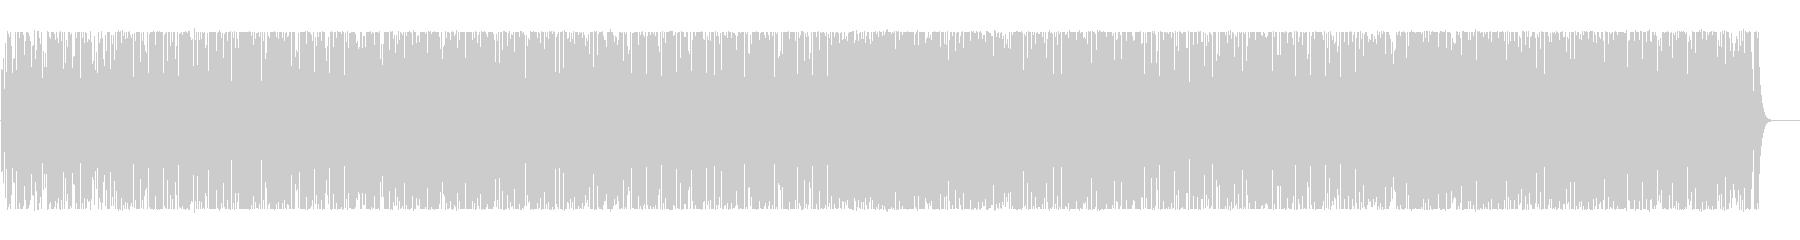 Rhythmical and comical BGM's unreproduced waveform